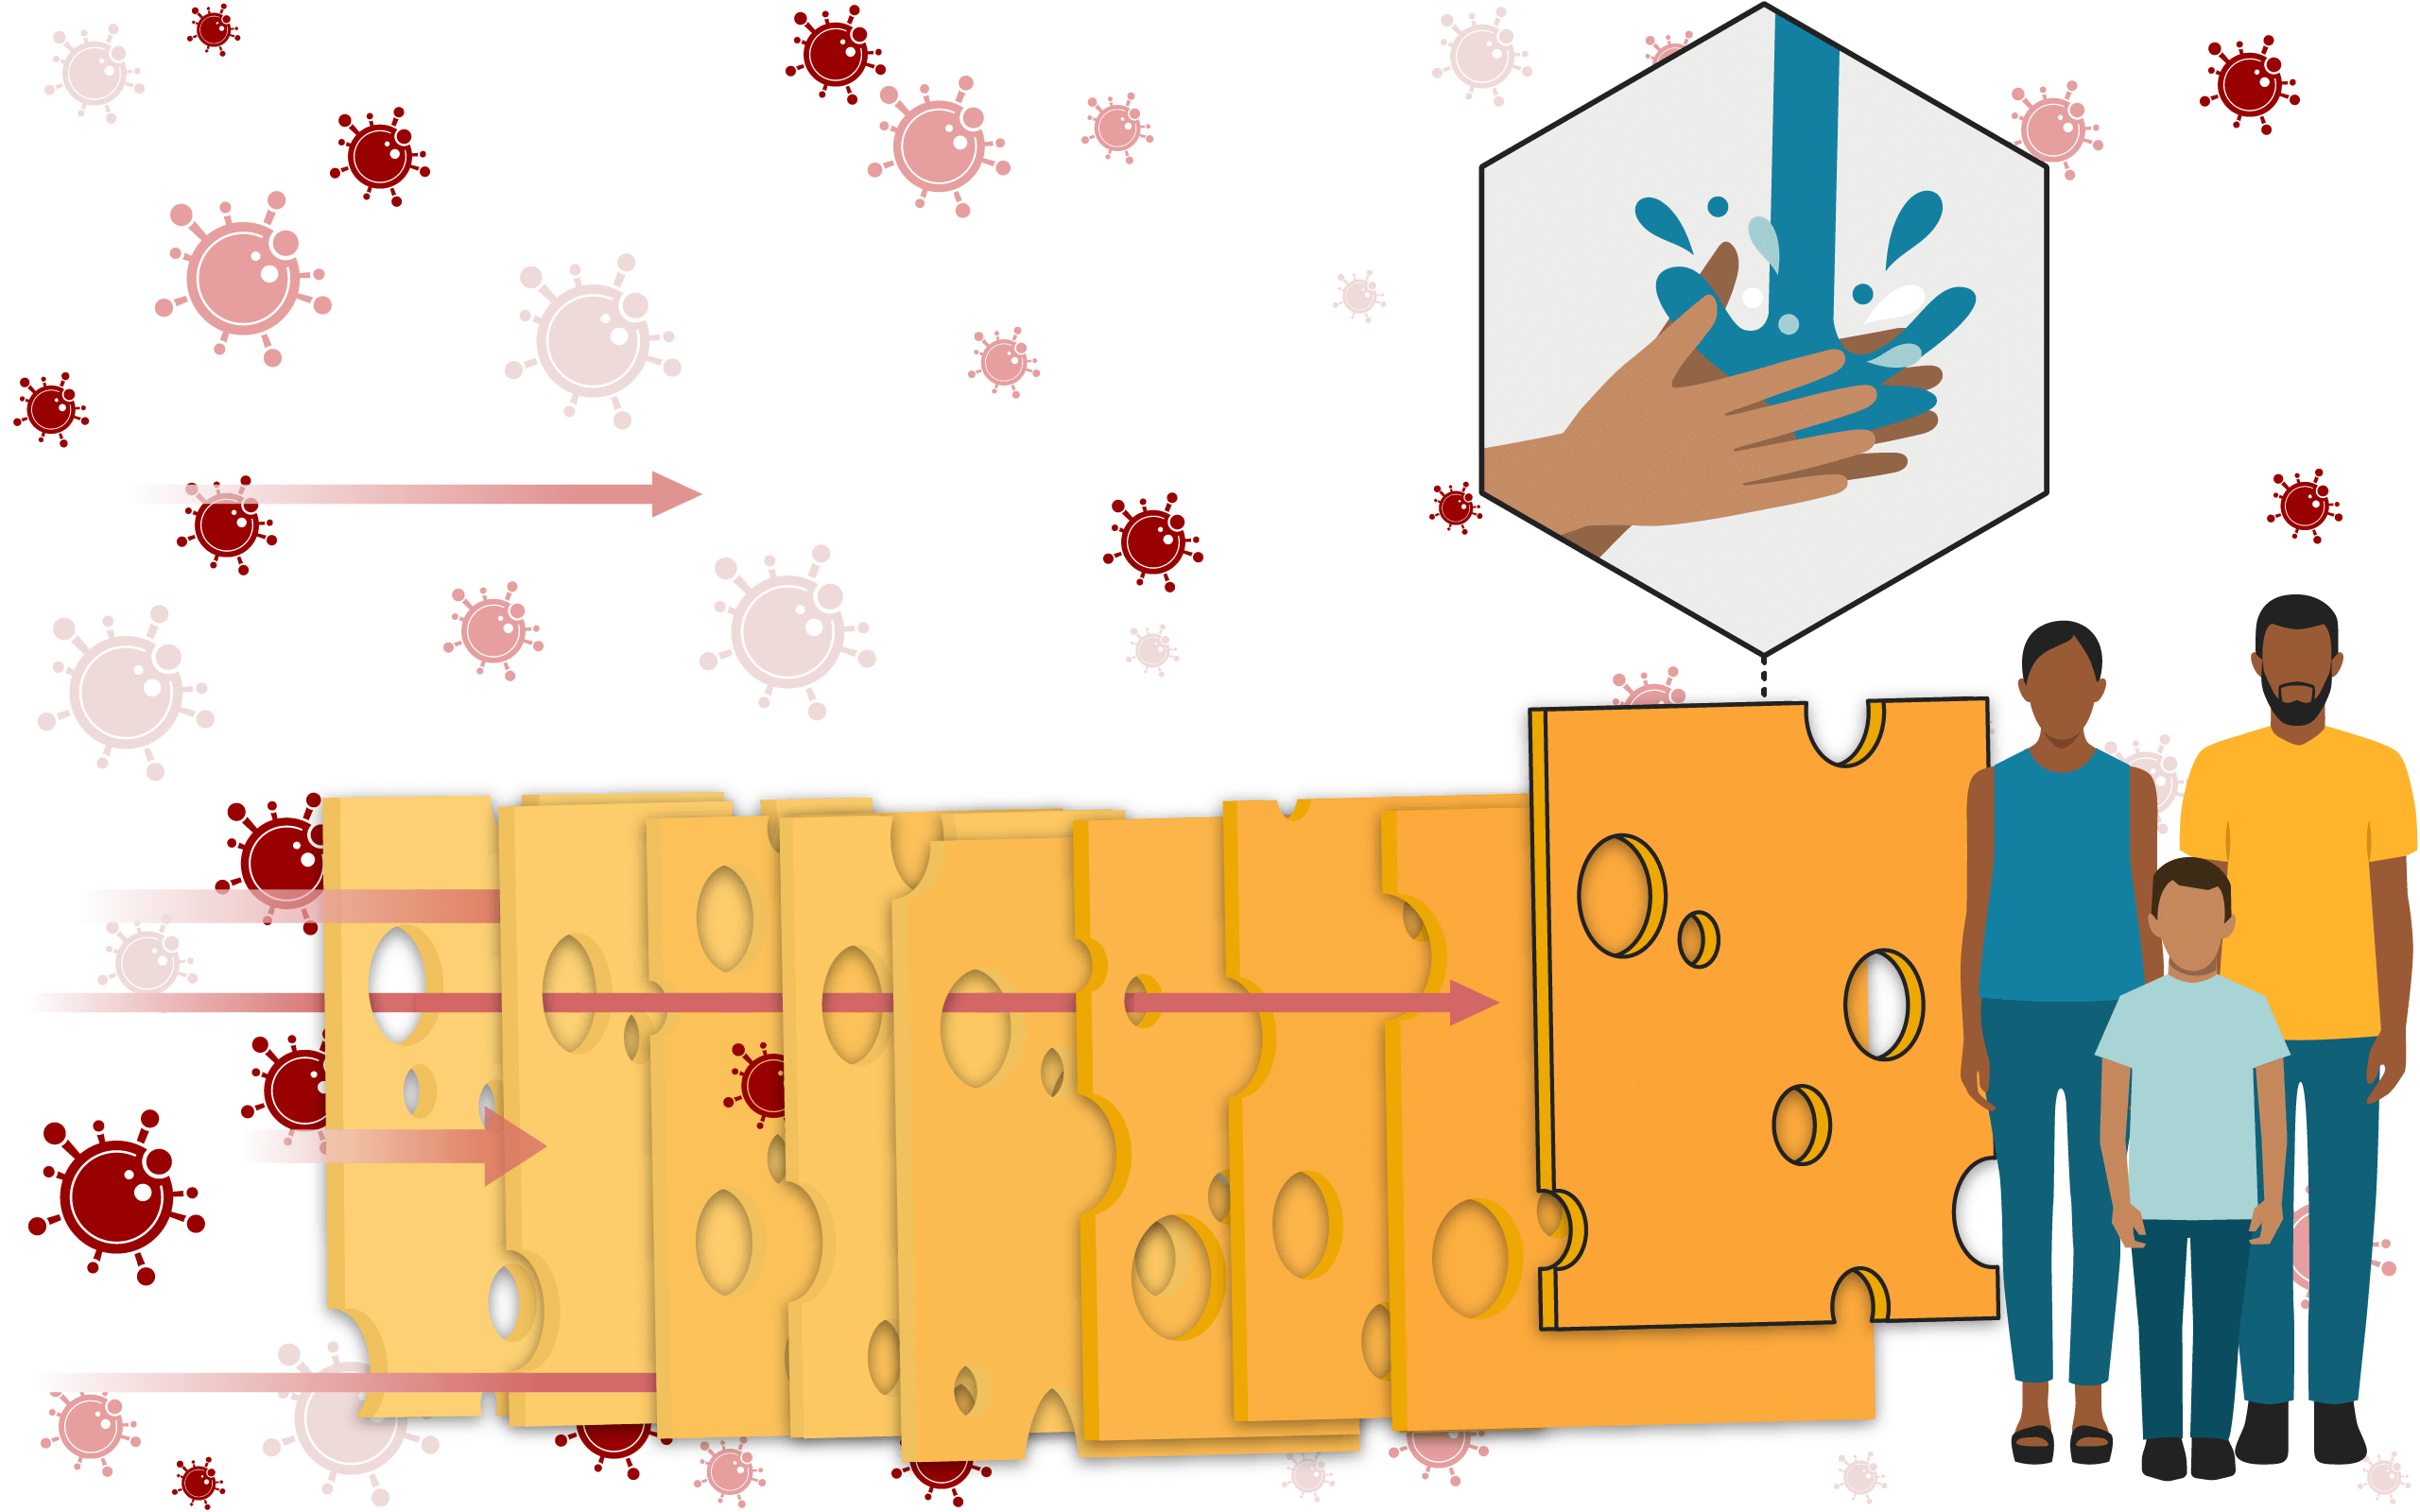 Illustration of a Swiss cheese, with a slice highlighted, representing good hygiene